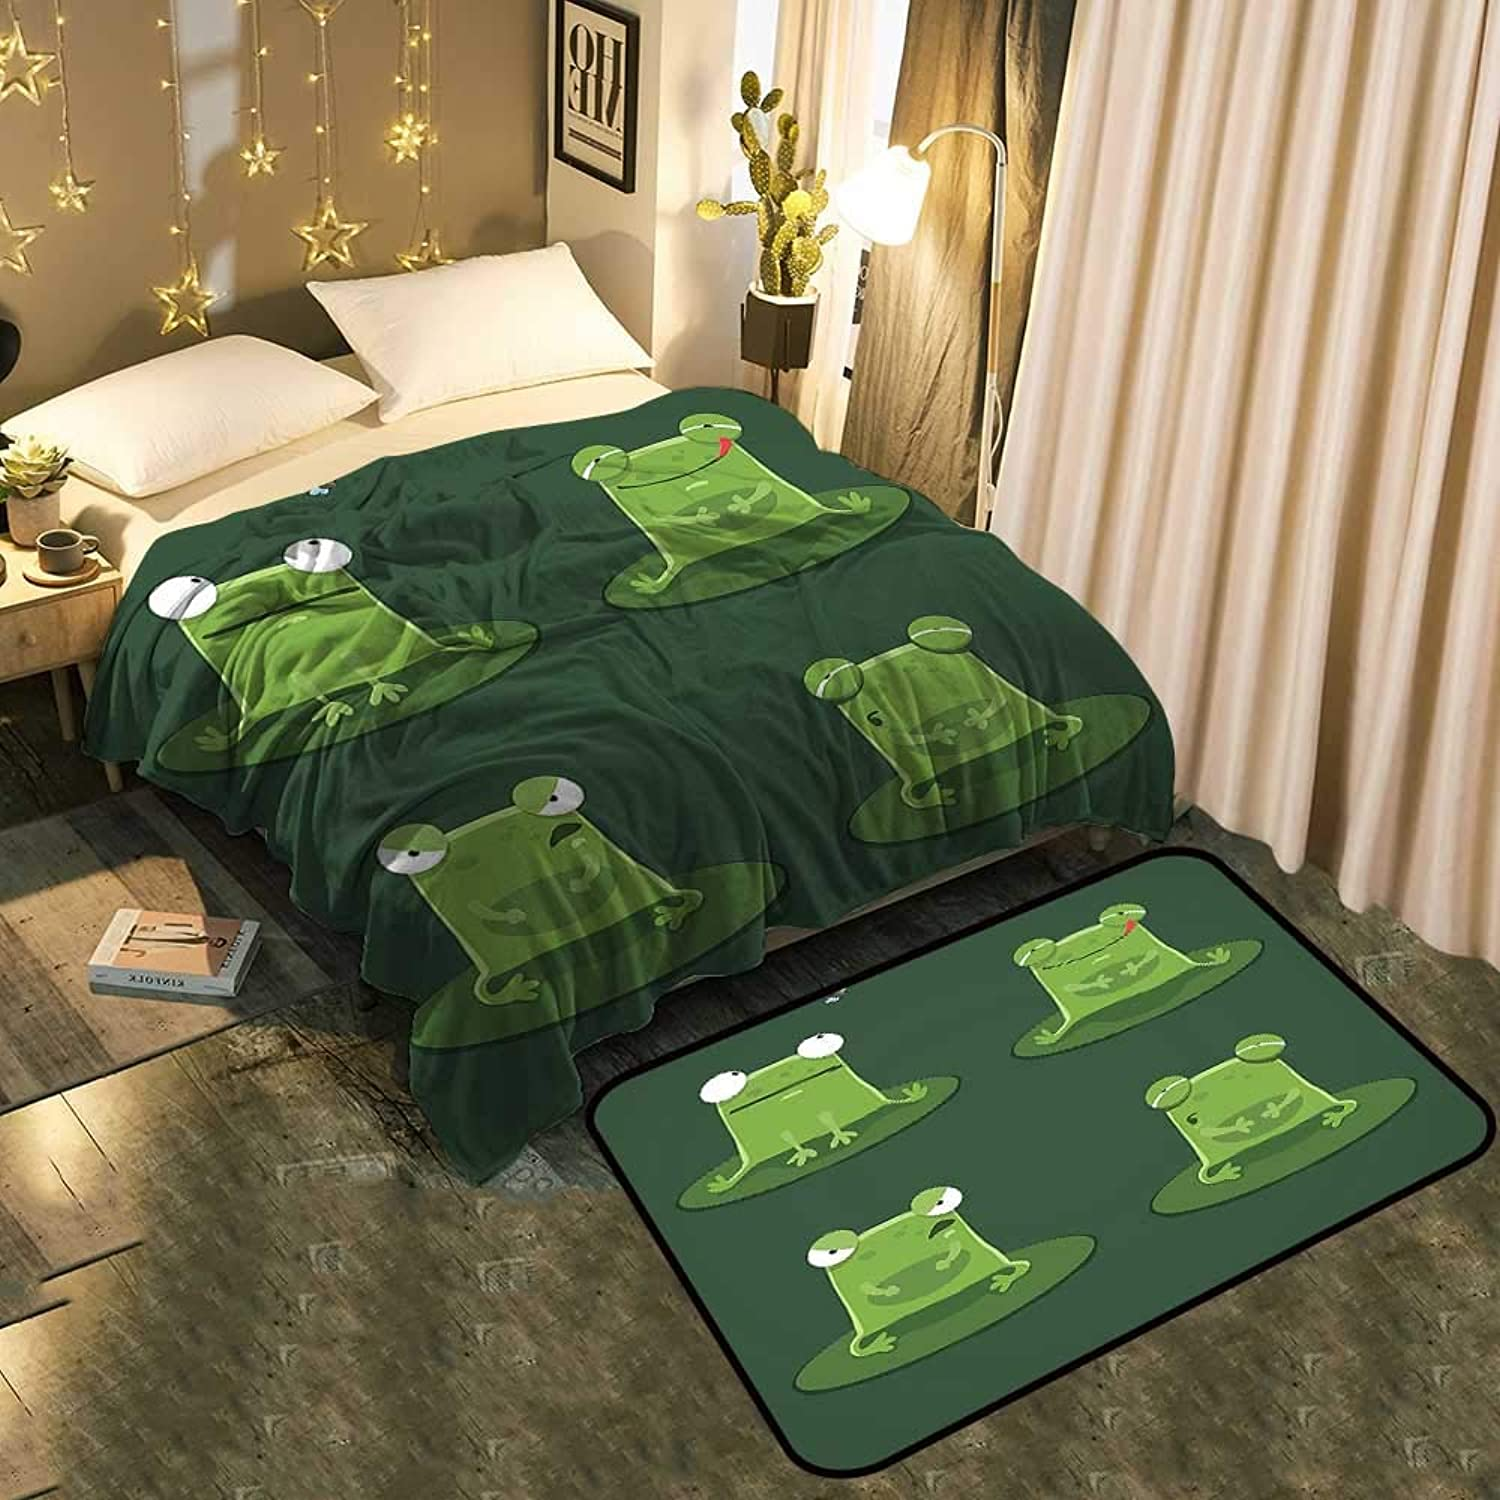 Bedside Blanket Doormat suitFunny Muzzy Frog on Lily Pad in Pond Hunting Tasty Fly Expressions Cartoon Cozy and Durable Blanket 50 x70  Mat 33 x21